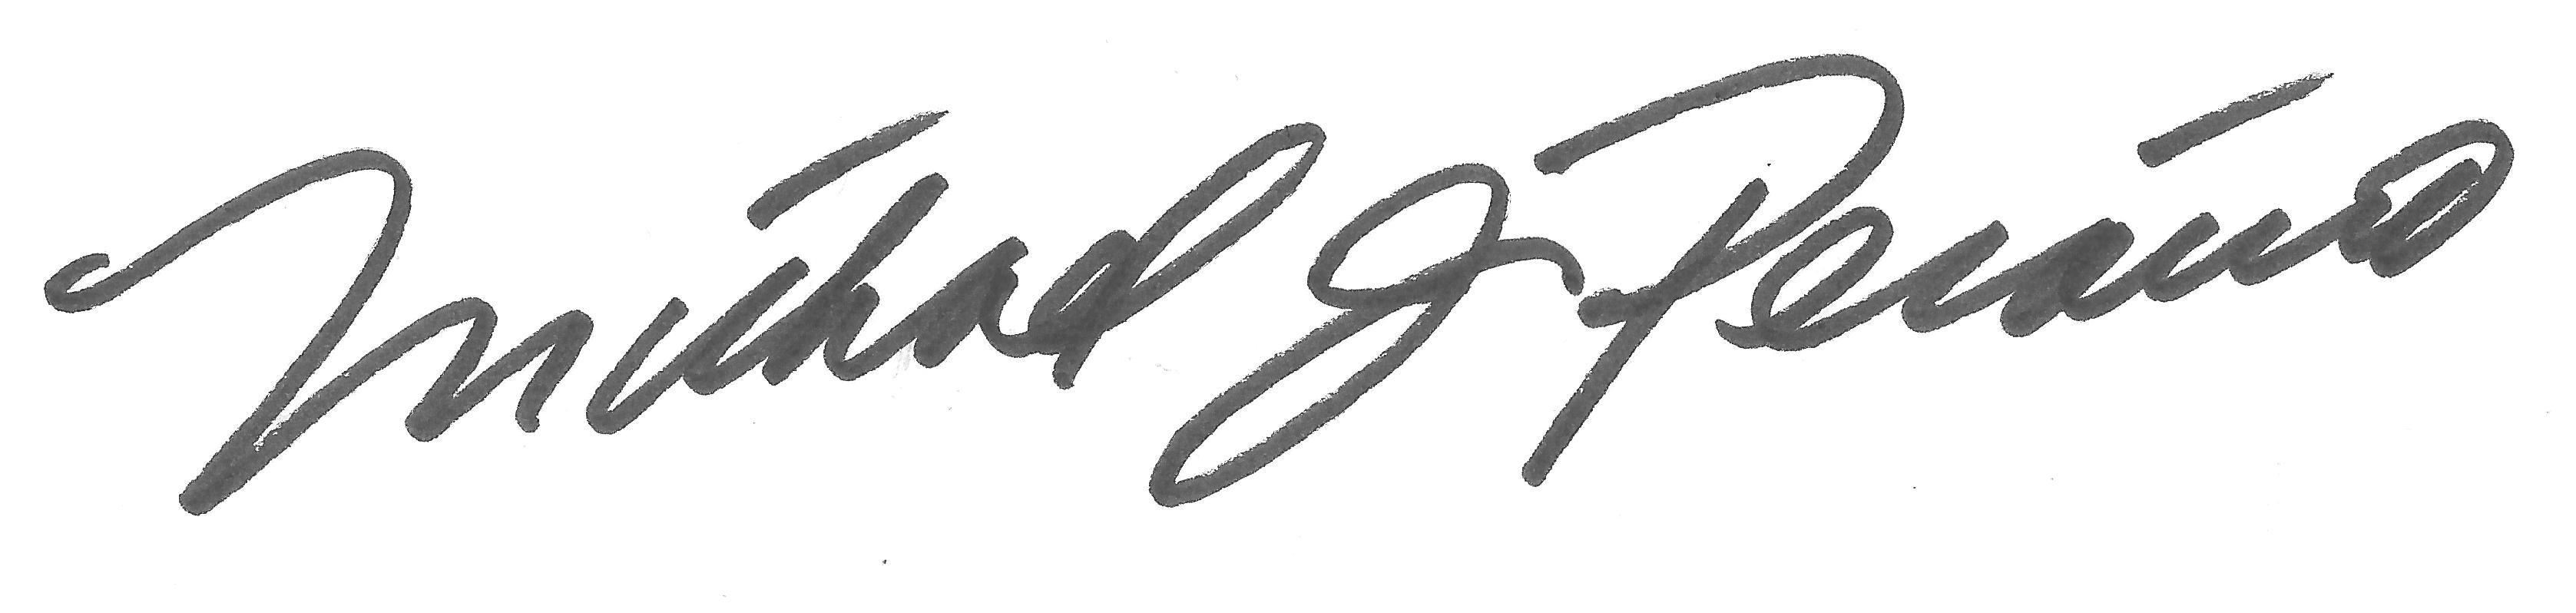 Michael Peraino Signature